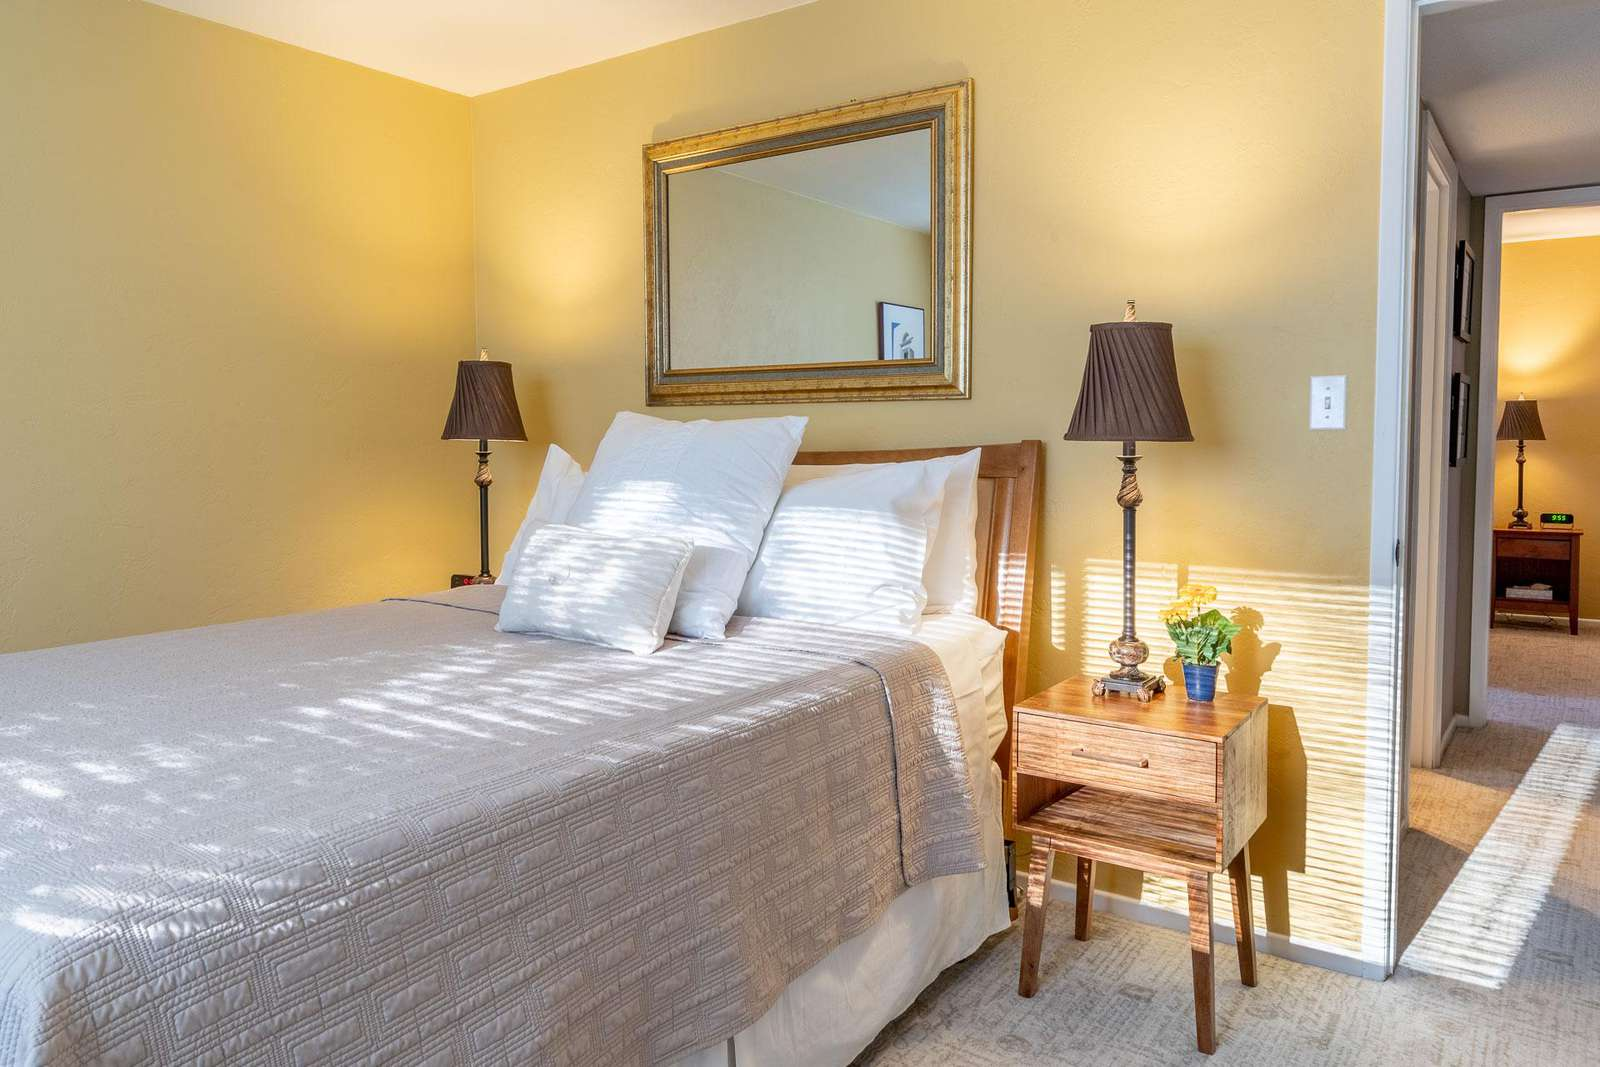 Two separate guest rooms that share a full bathroom